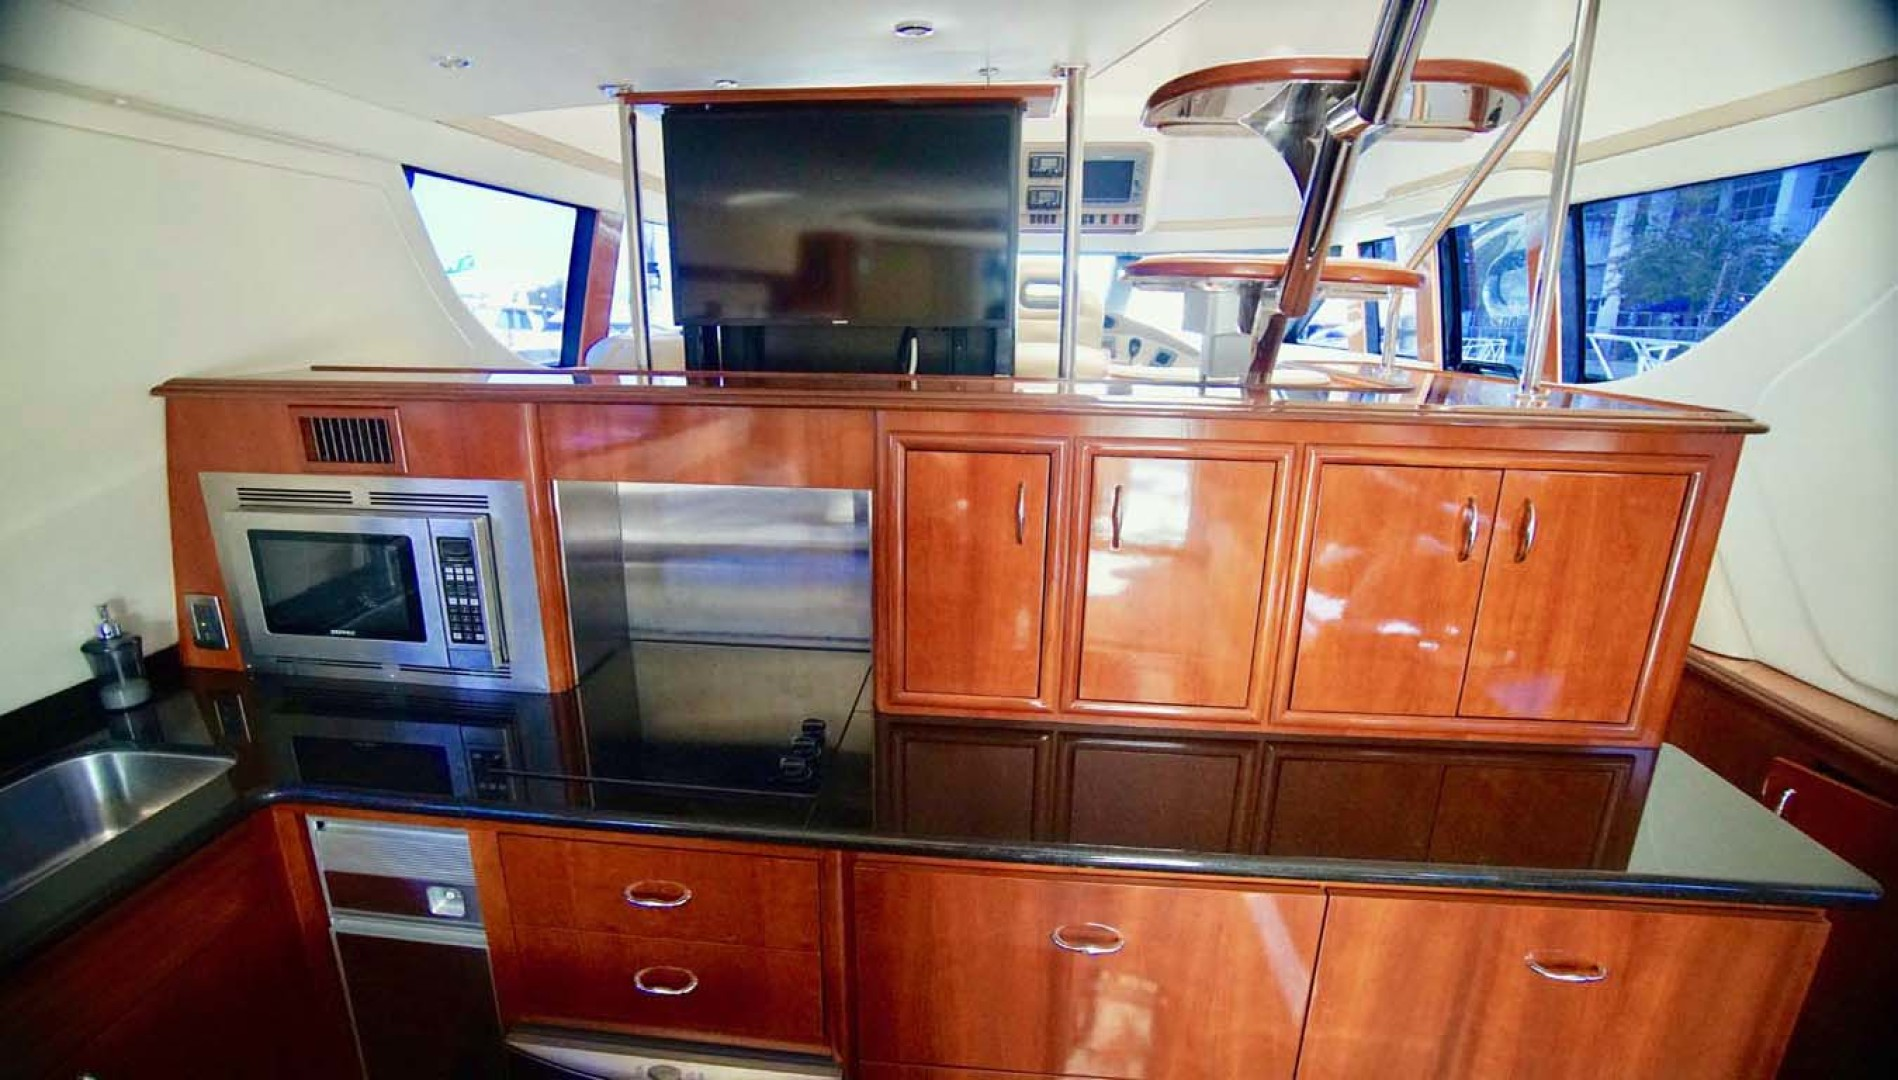 Carver-560 Voyager 2006-NEED A BREAK Fort Myers-Florida-United States-Galley-1105774 | Thumbnail